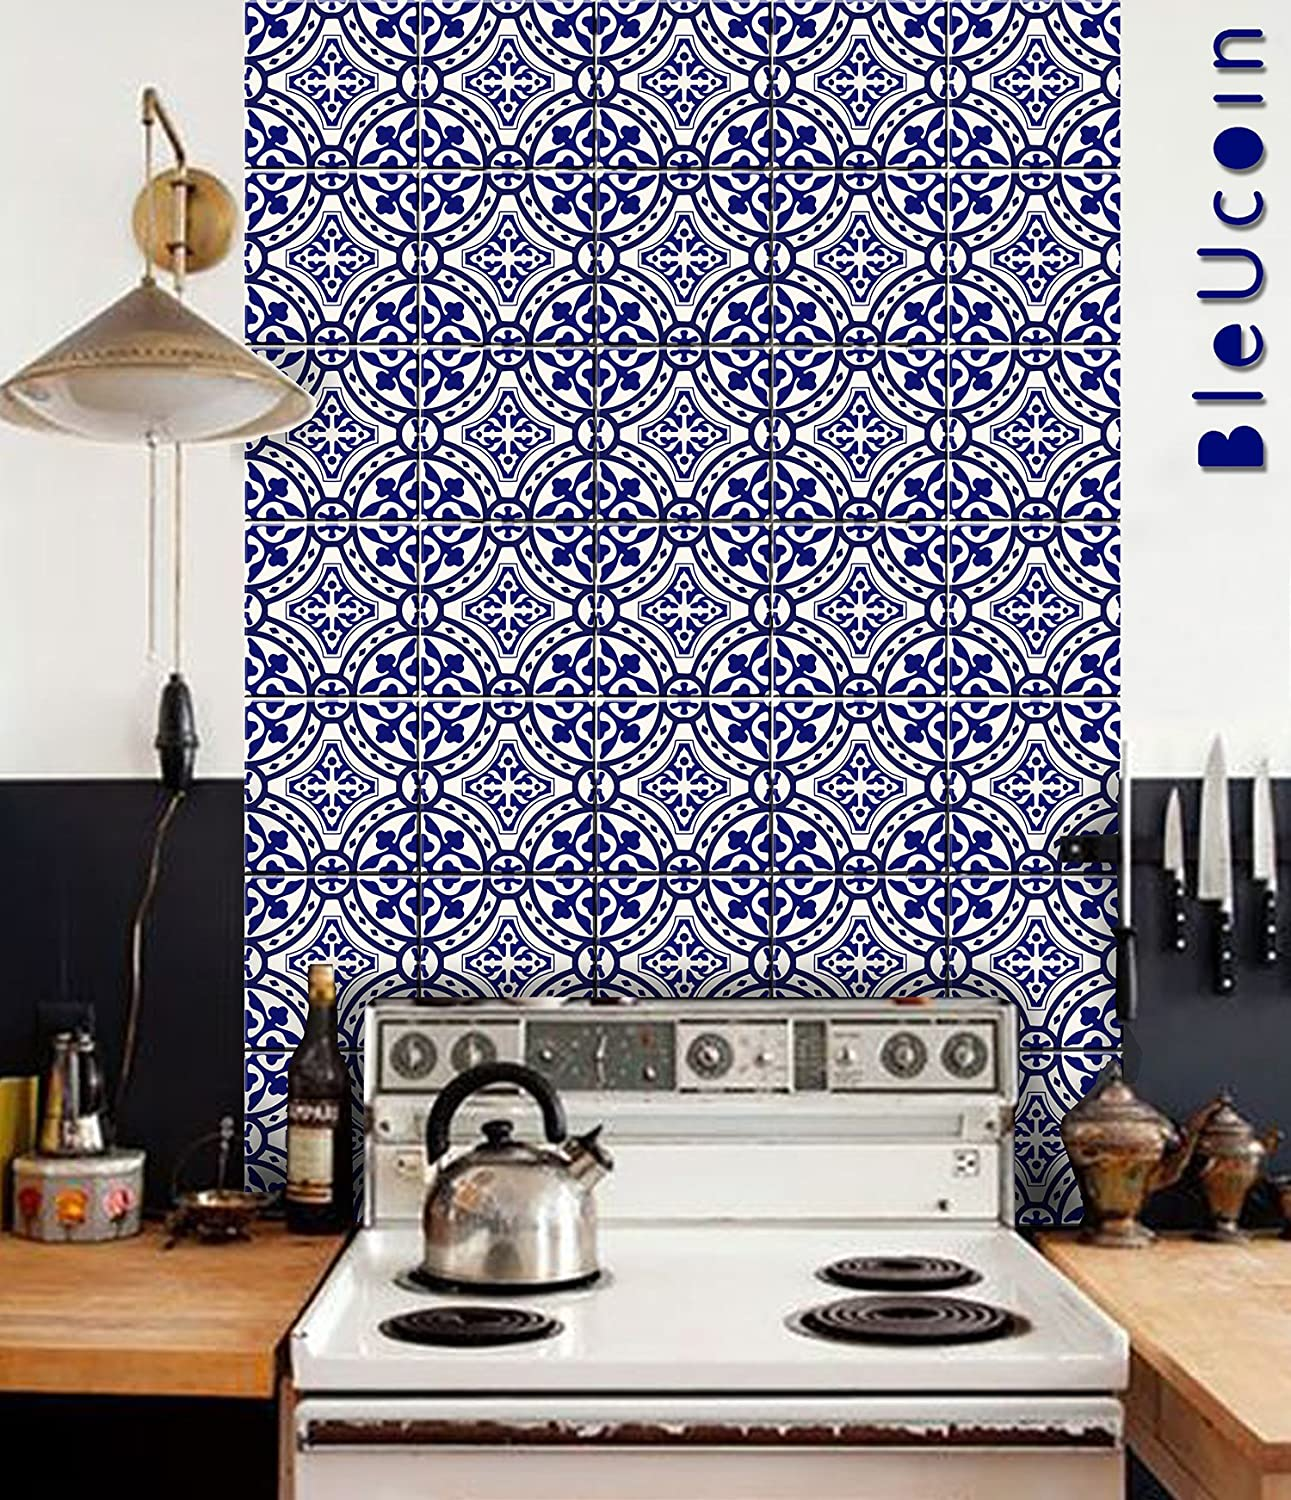 Amazon Com Peel And Stick Tile Wall Panel For Kitchen Bathroom Backsplash Removable Washable Water And Heat Resistance Vinyl Panels 4 Ft X 1 Ft 2 Panels With Grouts Blue Home Kitchen